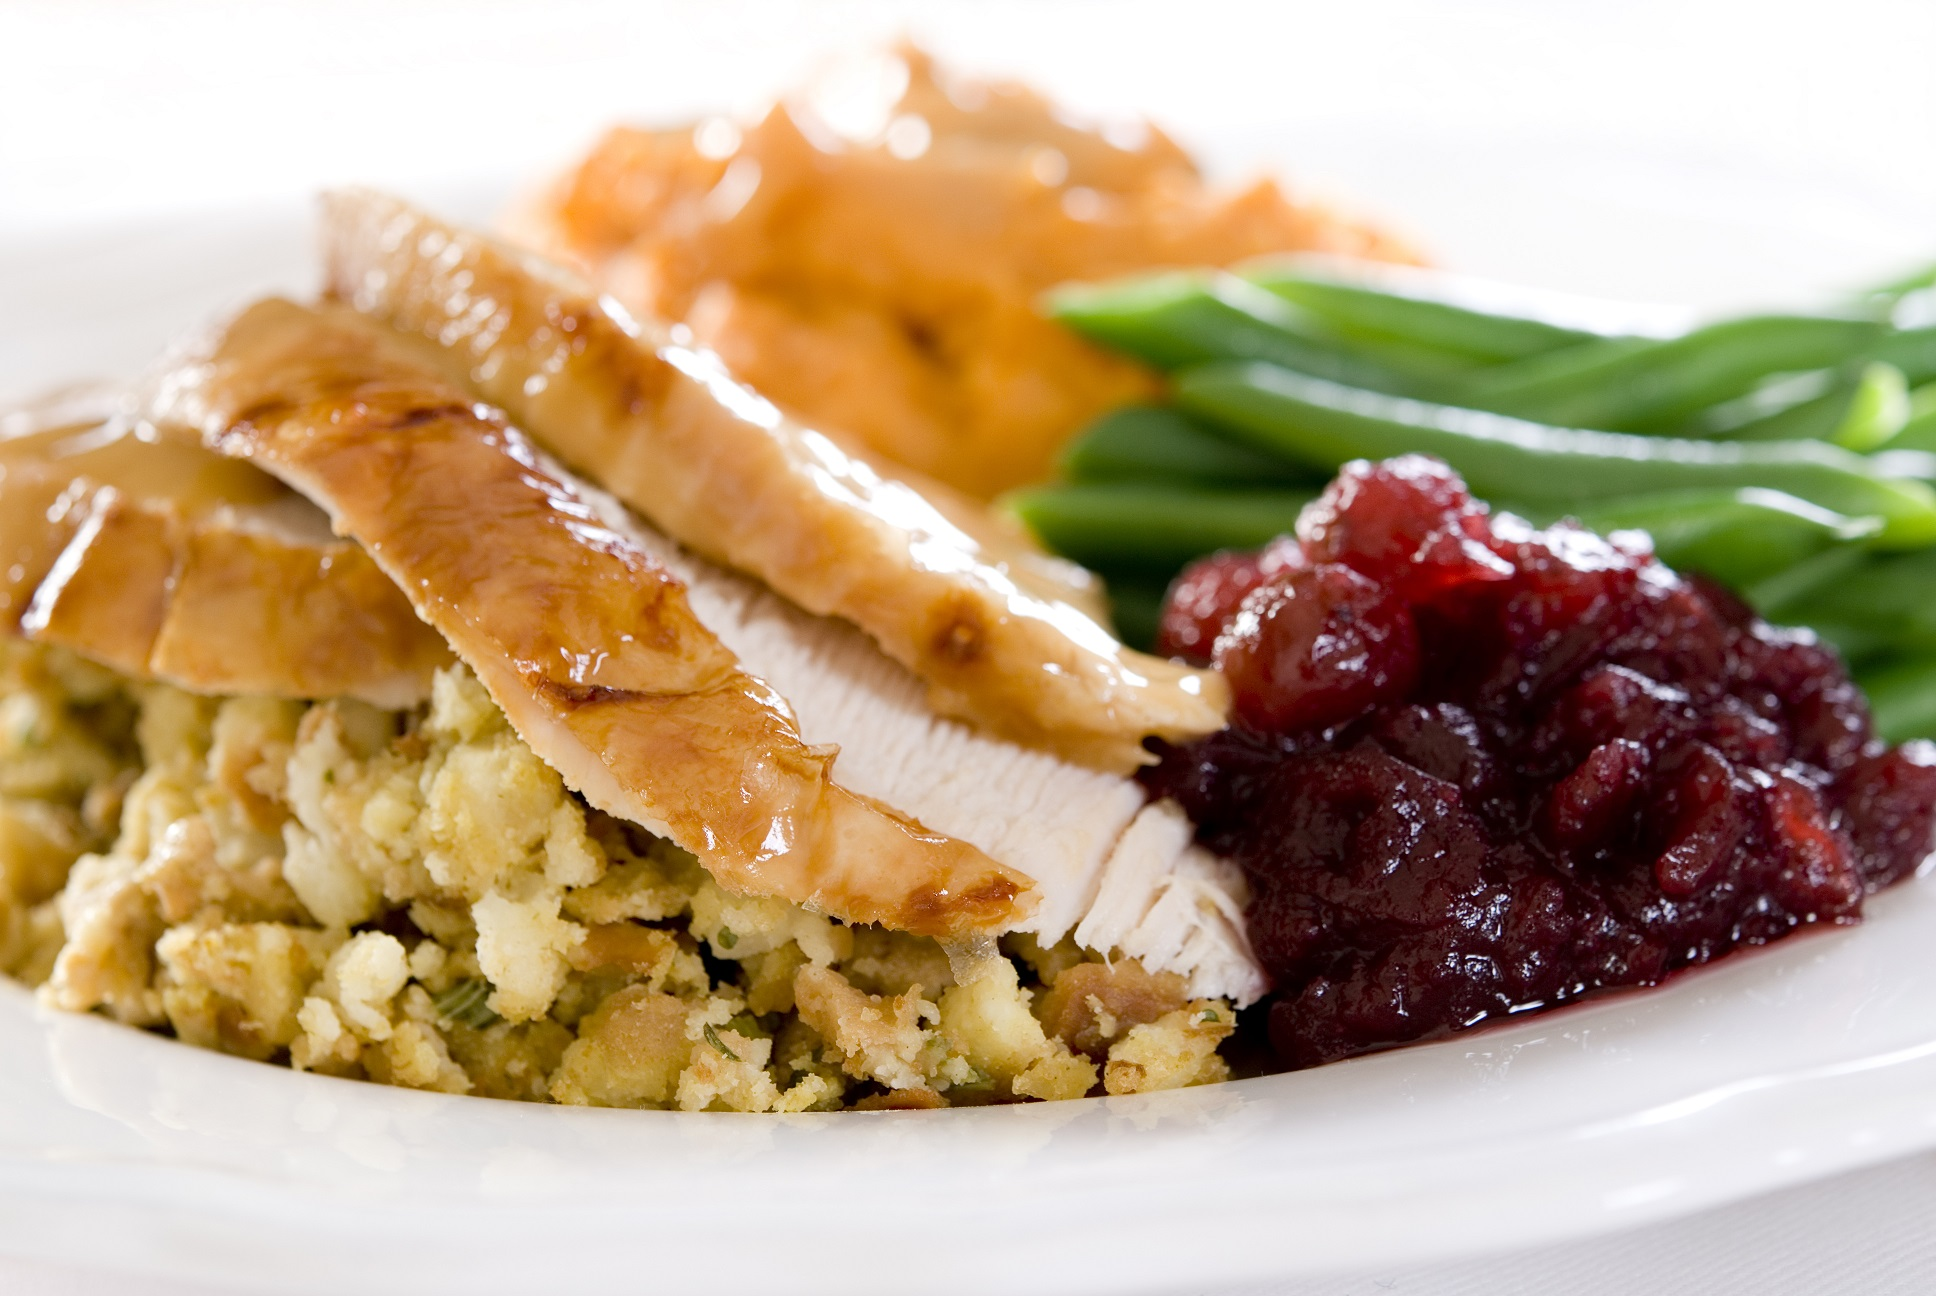 plate of turkey cranberries stuffing and green beans